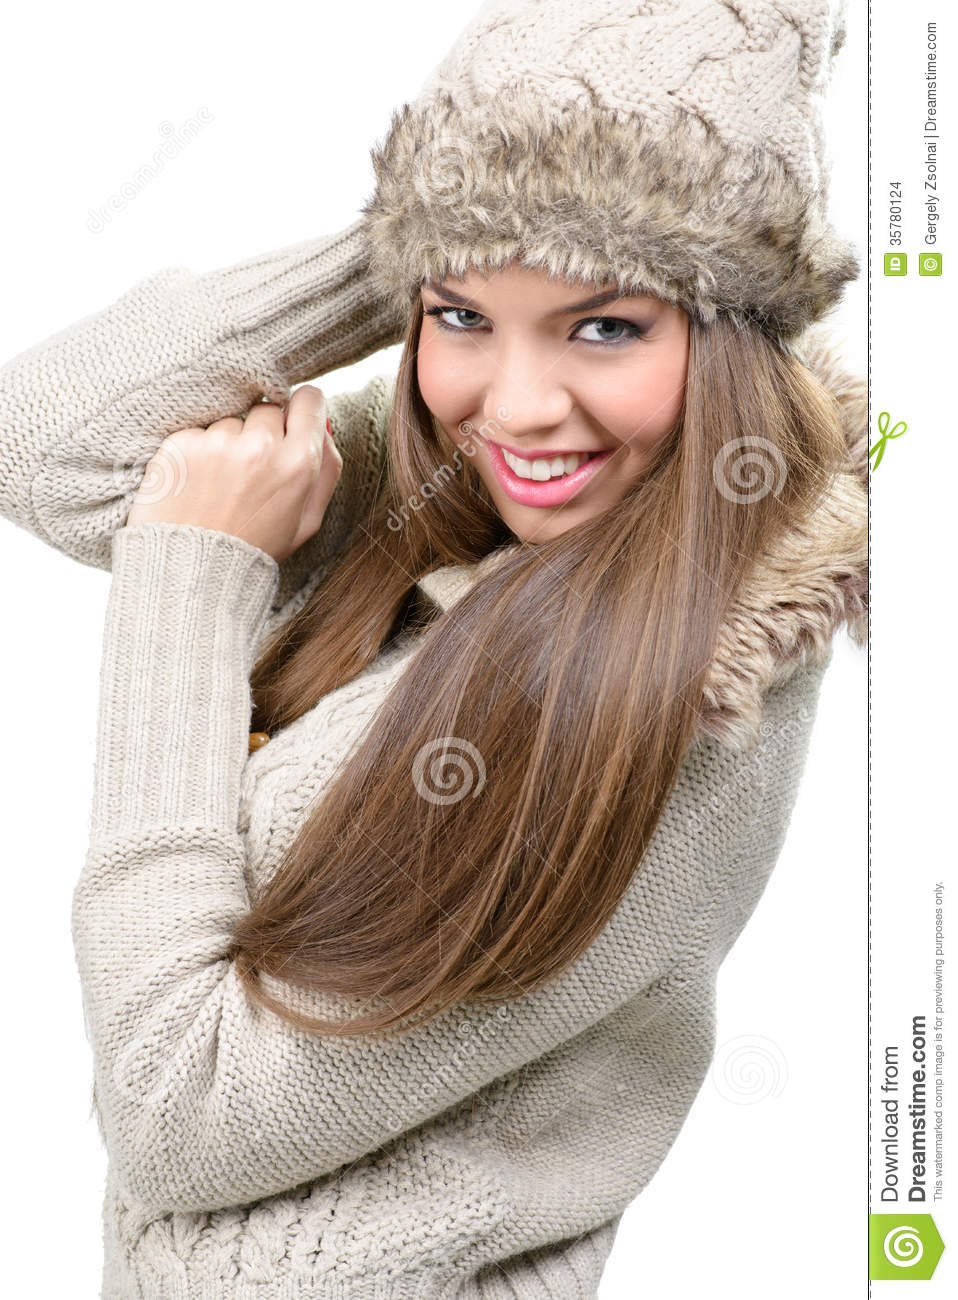 Fashion Model - Warm Winter Clothing Stock Images - Image 35780124